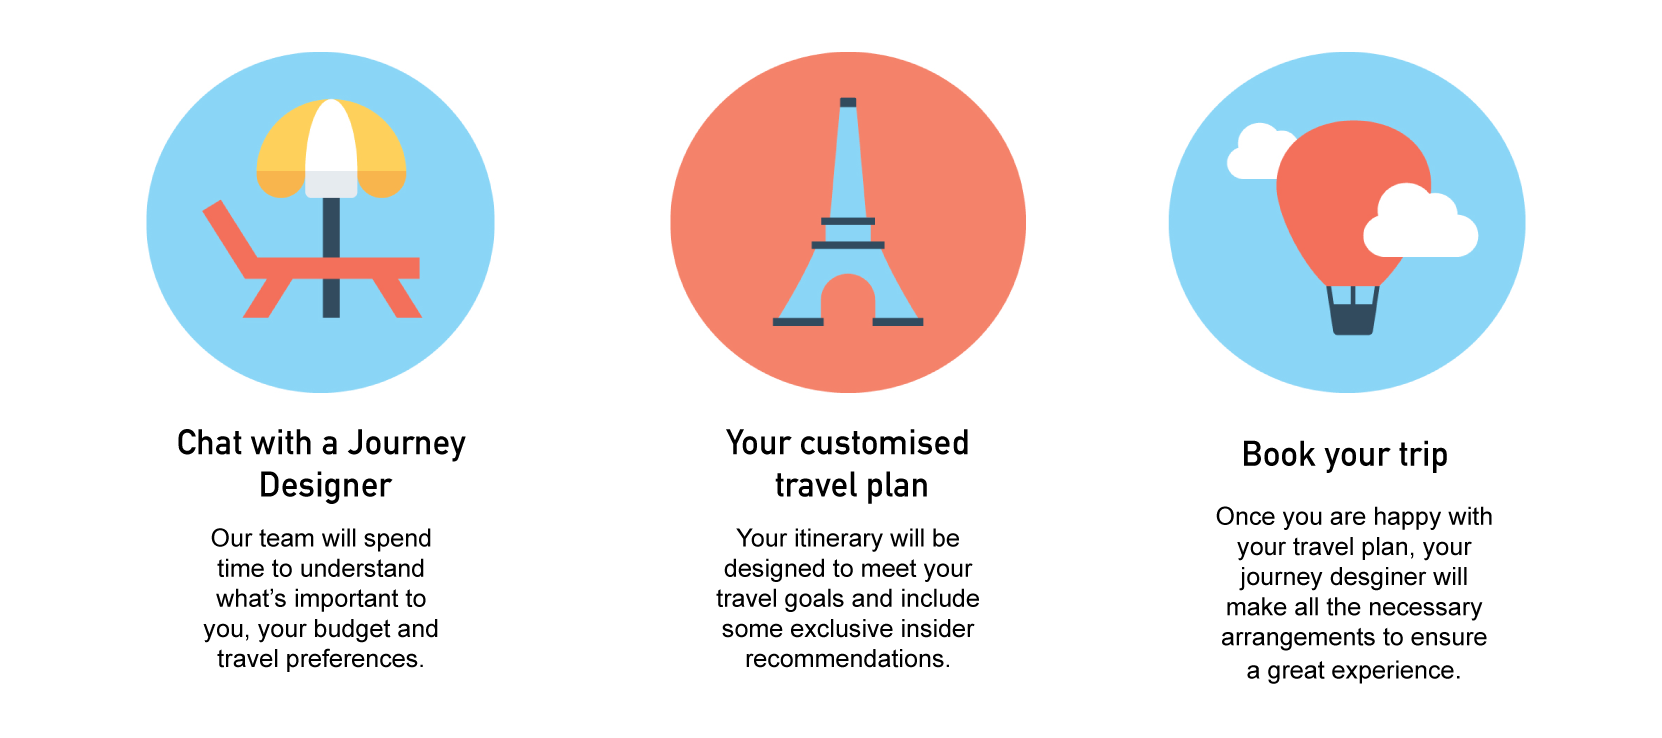 icons-for-website6.png